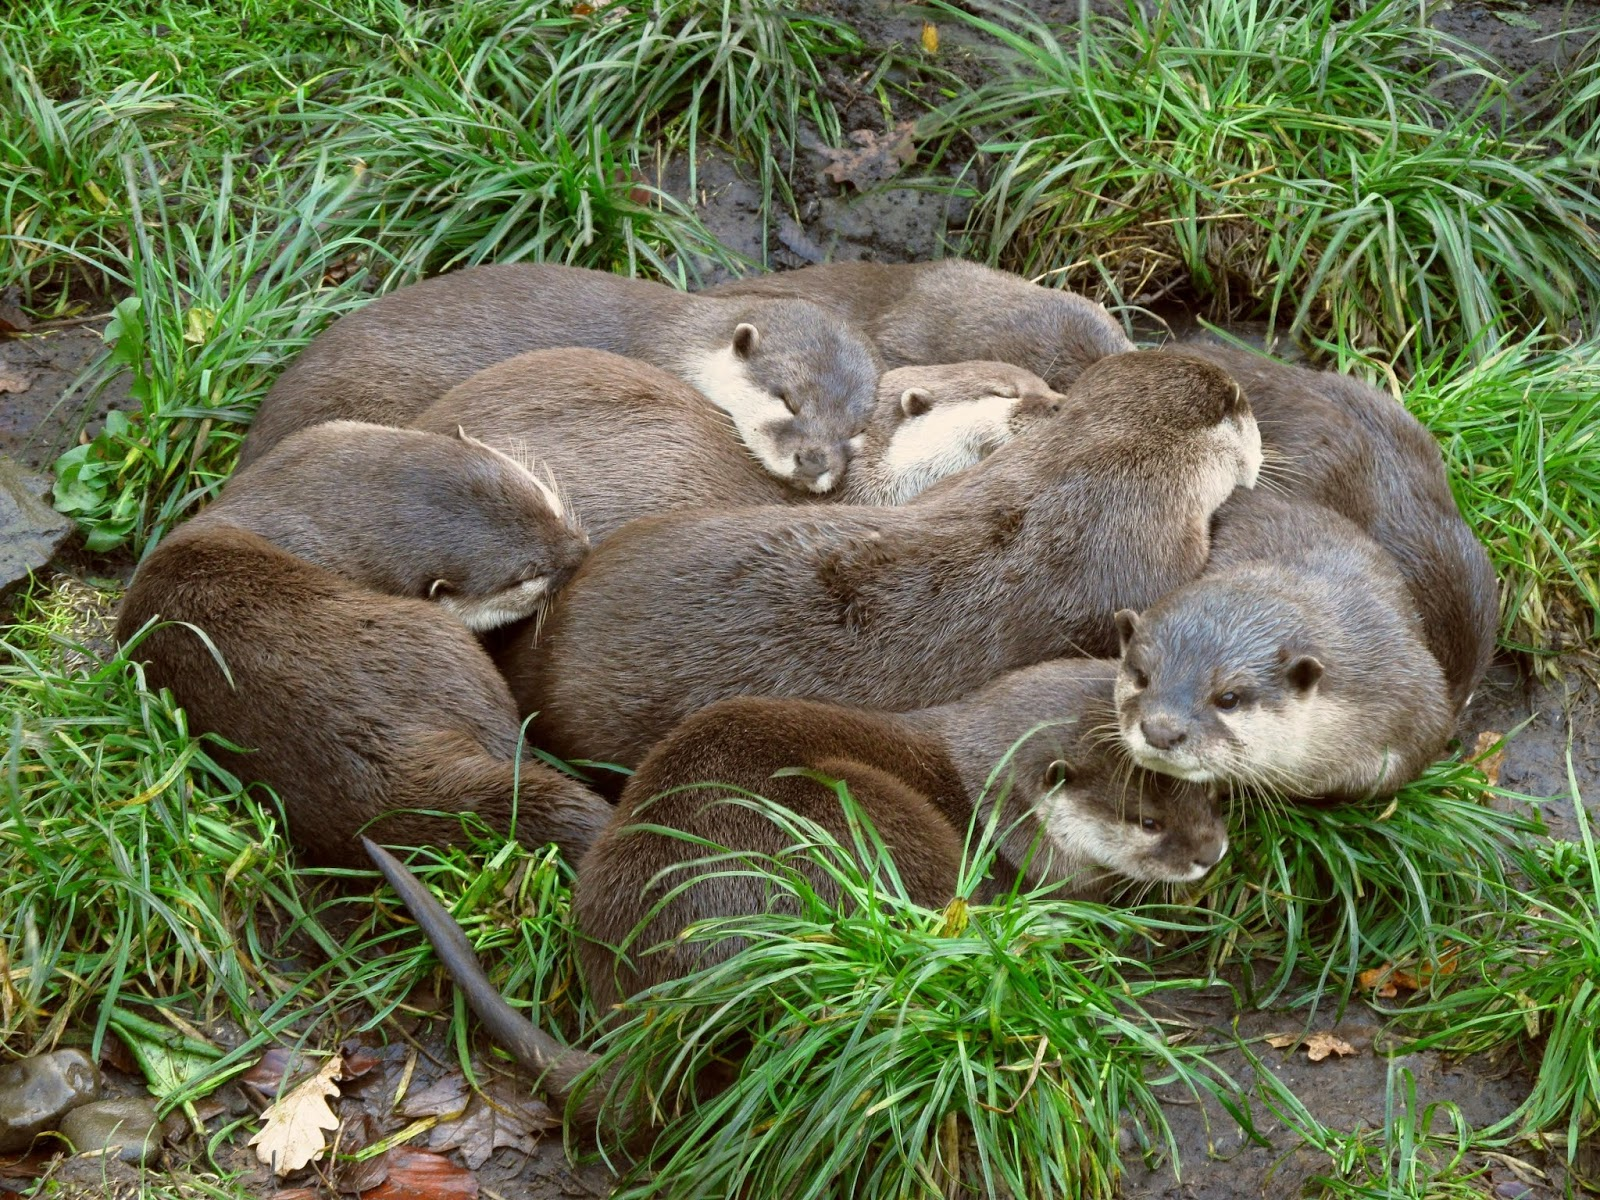 Besides romping around, smooth-coated otters are known to engage in 'group rubbings', partly to clean their furry coats and also to strengthen family bonds.